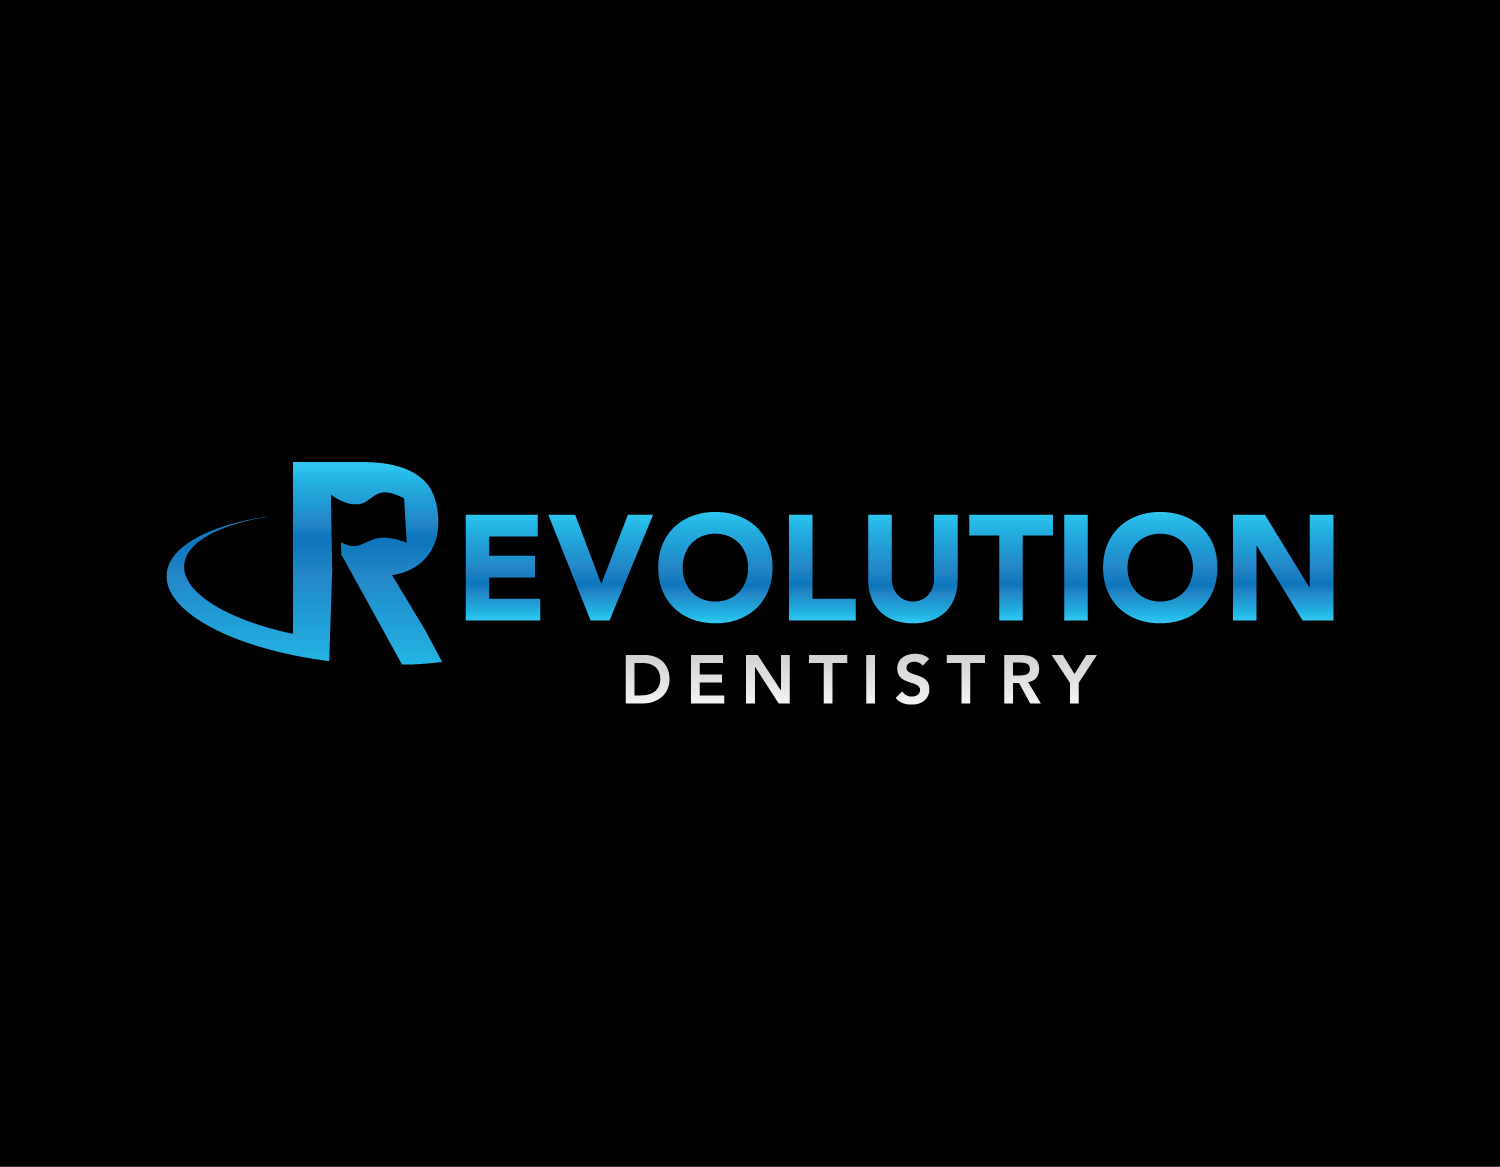 Logo Design by rA - Entry No. 200 in the Logo Design Contest Artistic Logo Design for Revolution Dentistry.